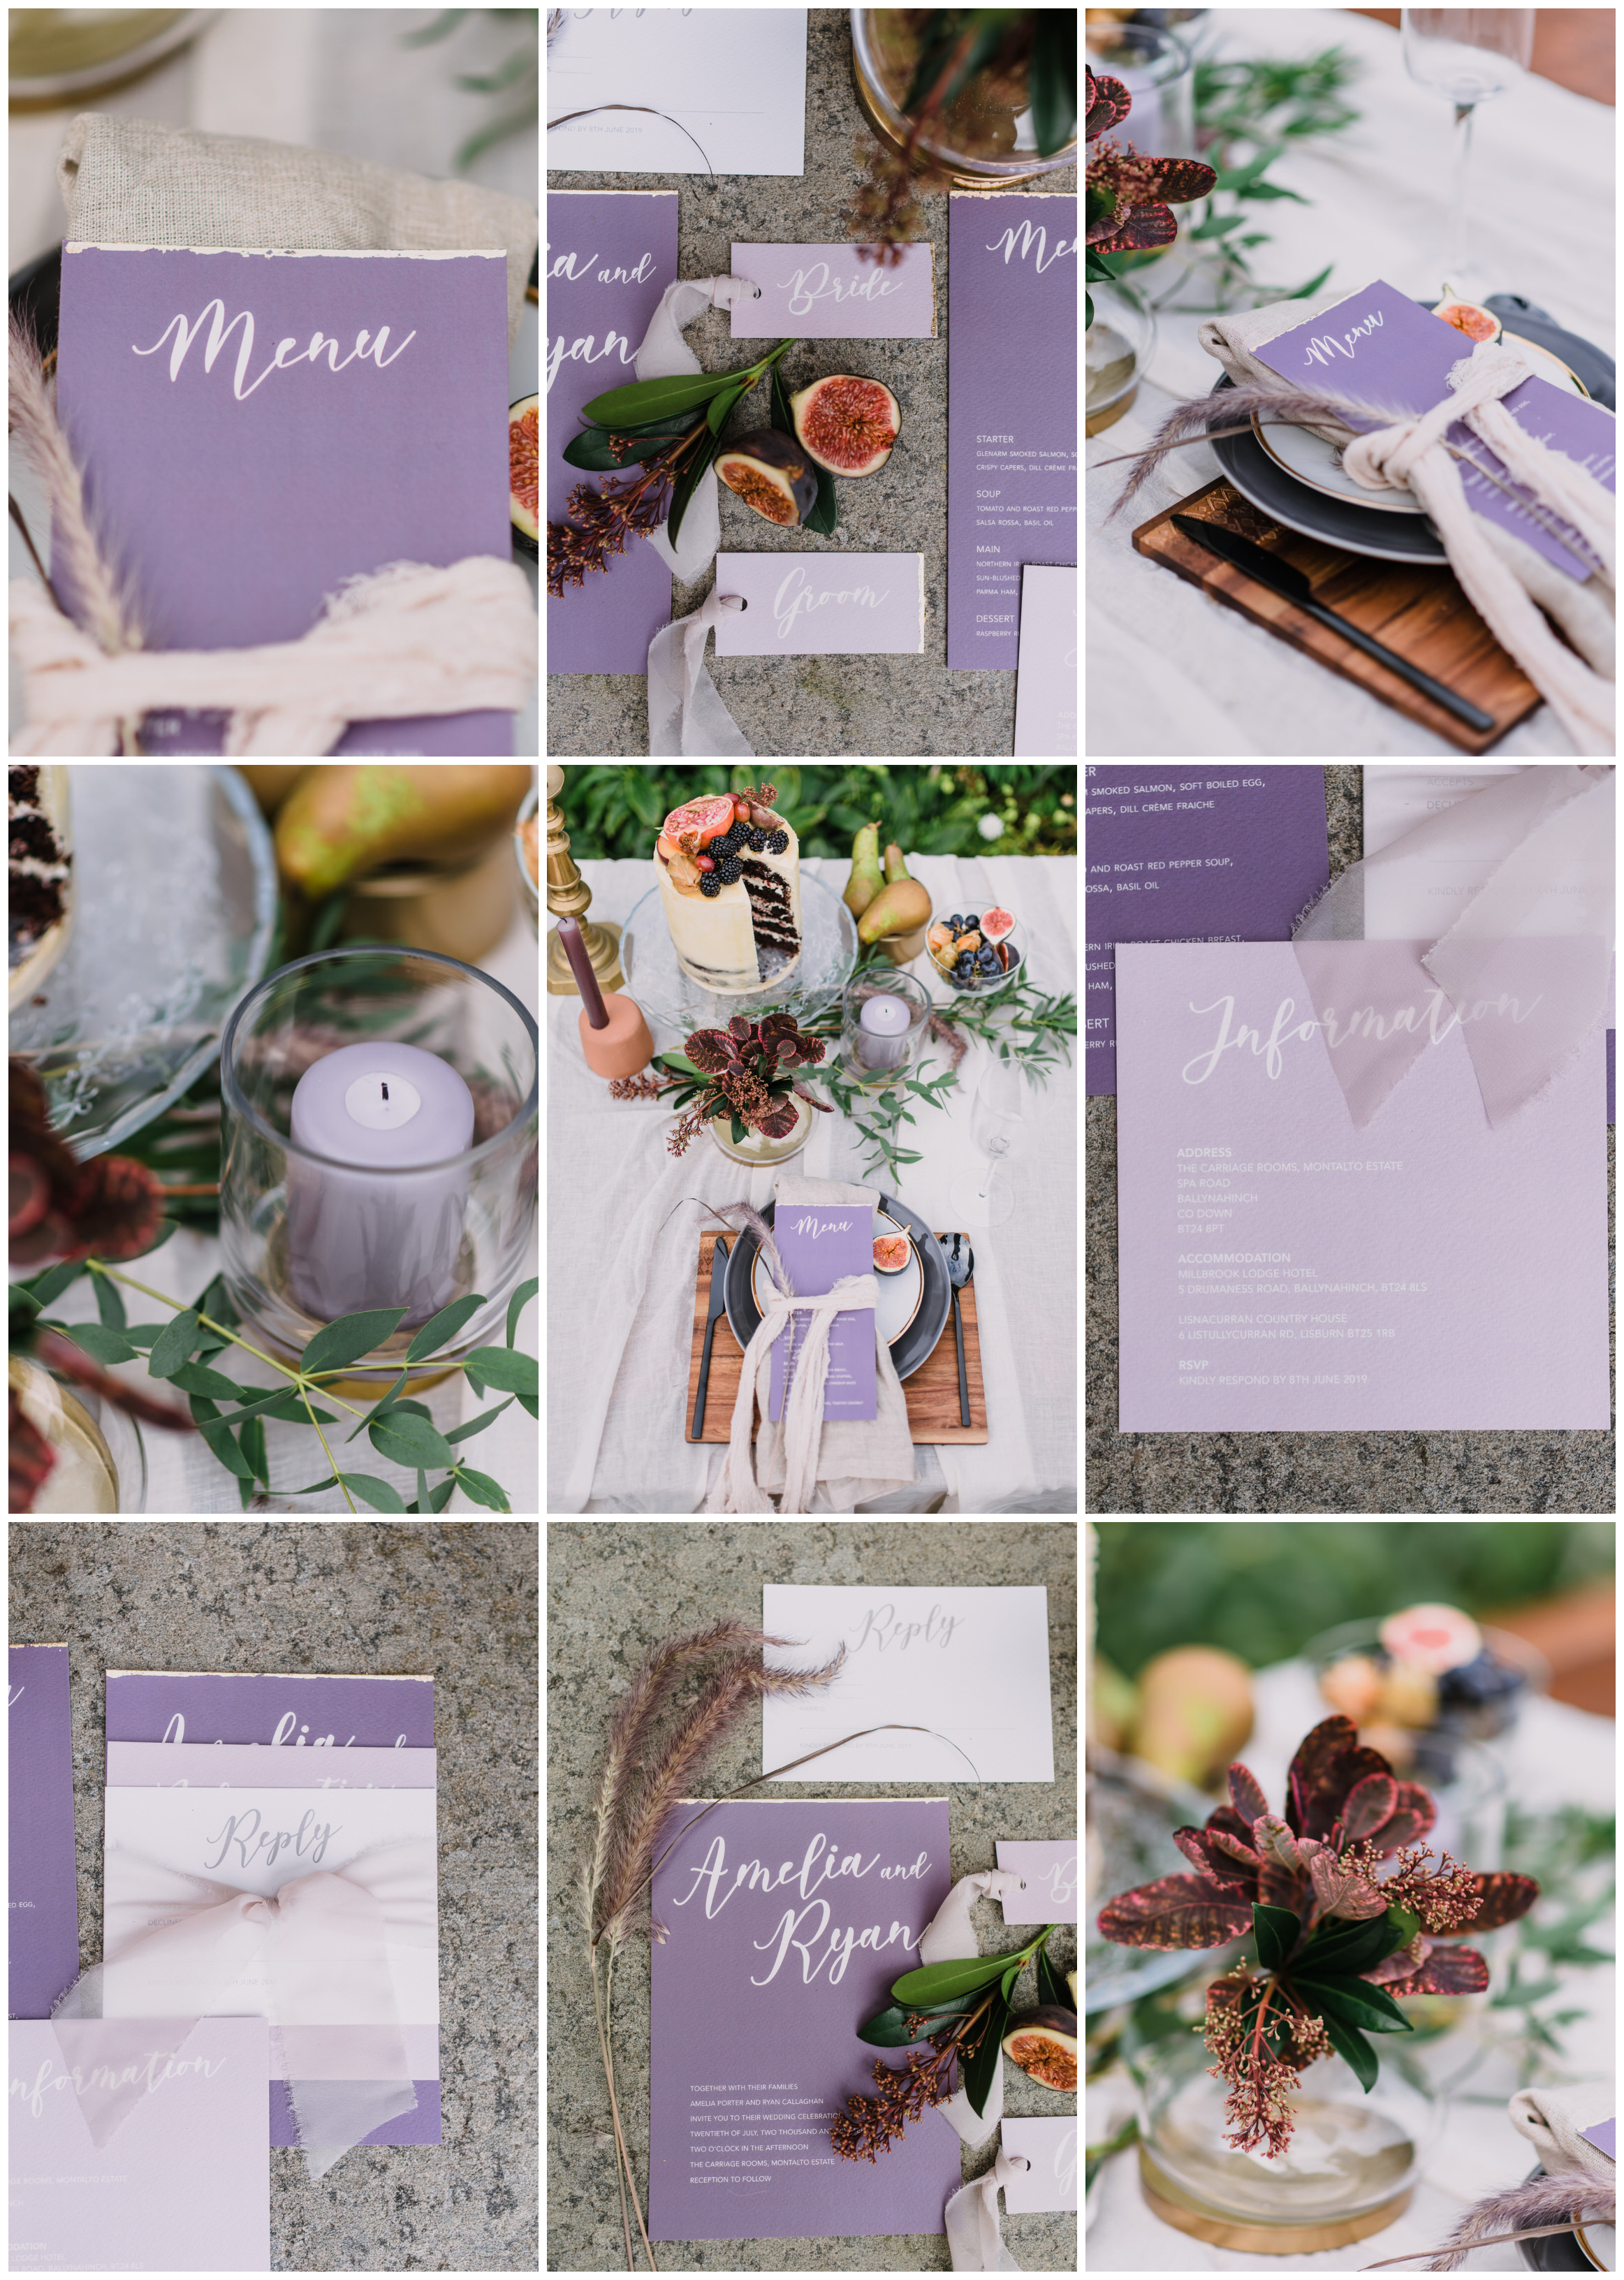 autumn at the carriage rooms, montalto estate, naked wedding cake, purple wedding invitations, autumnal wedding stationery.jpg